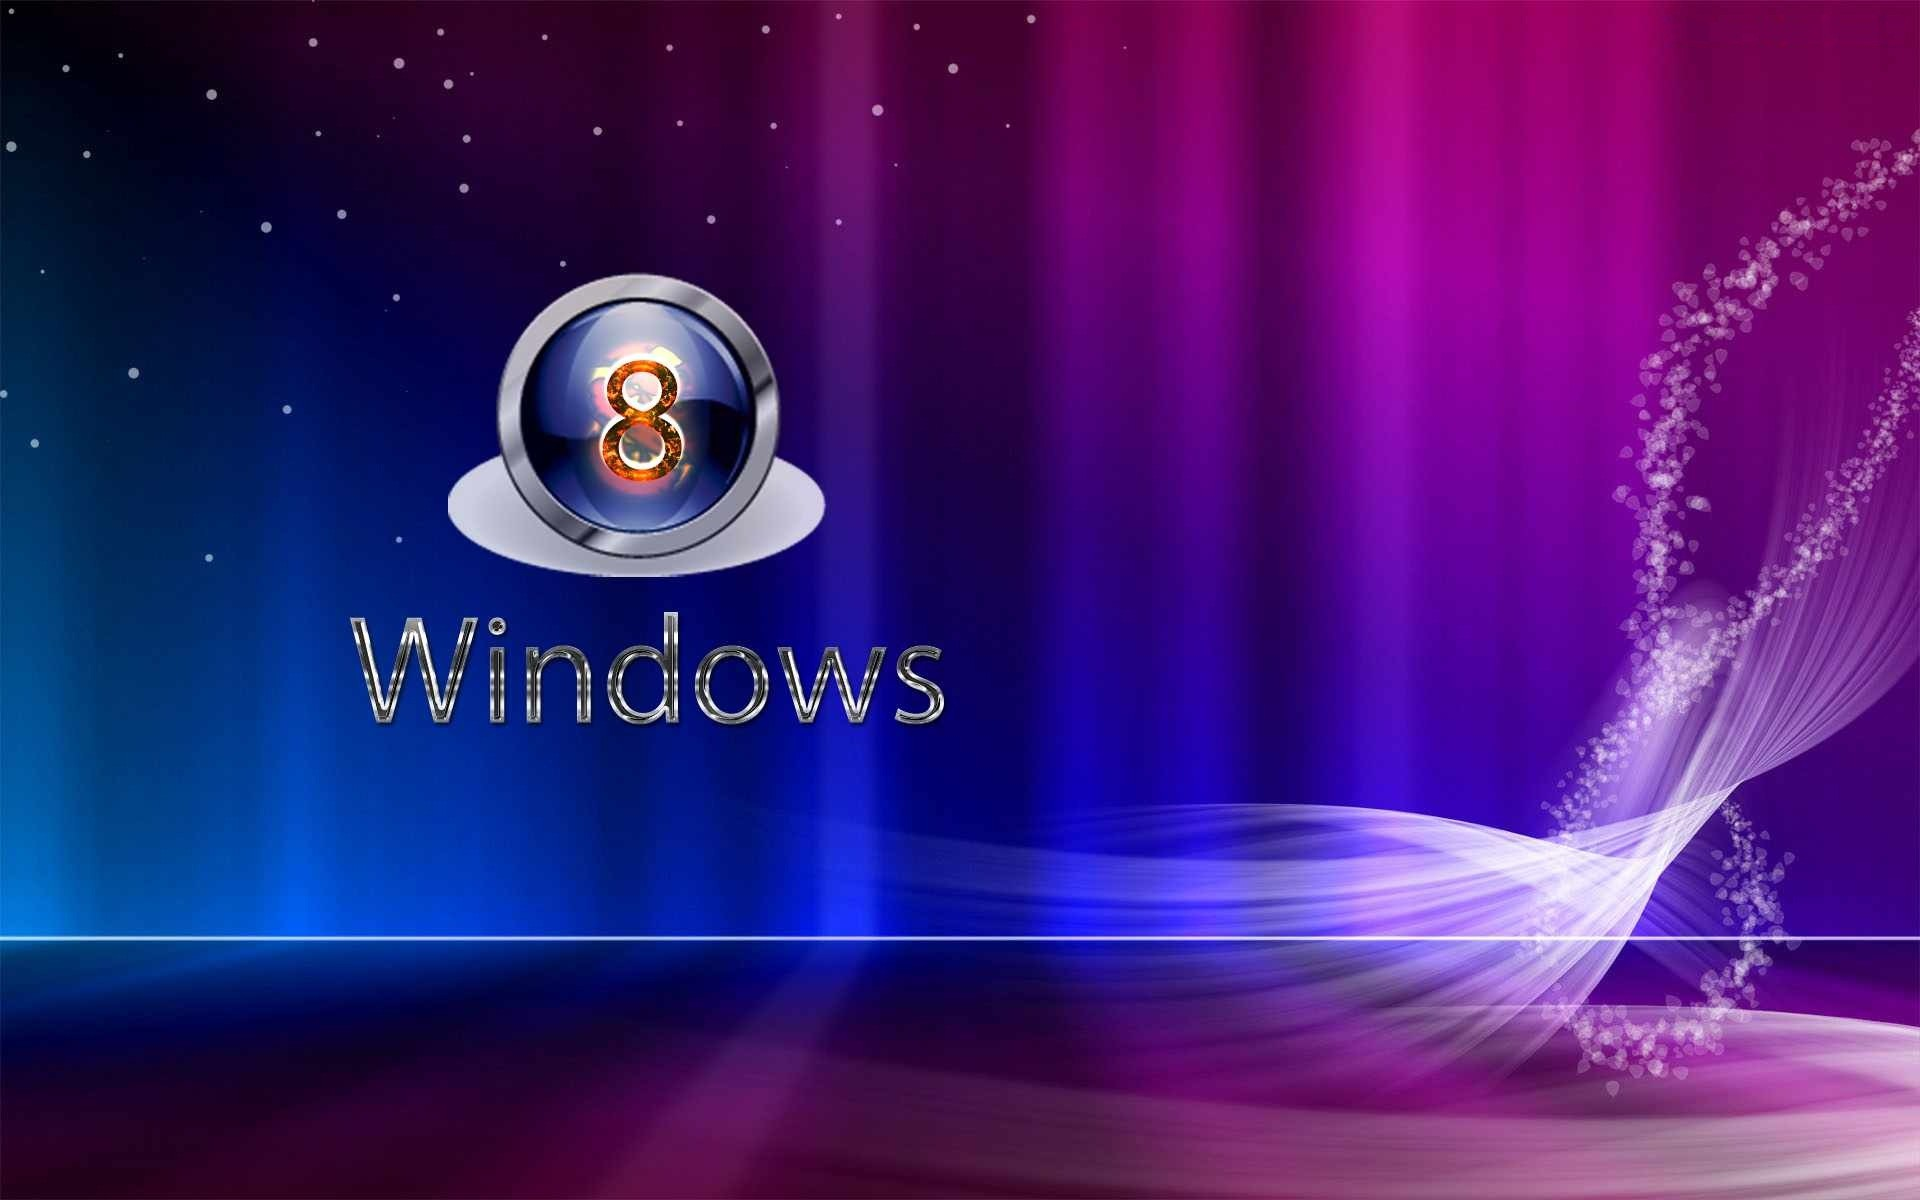 Background for Windows HD Wallpapers Pulse